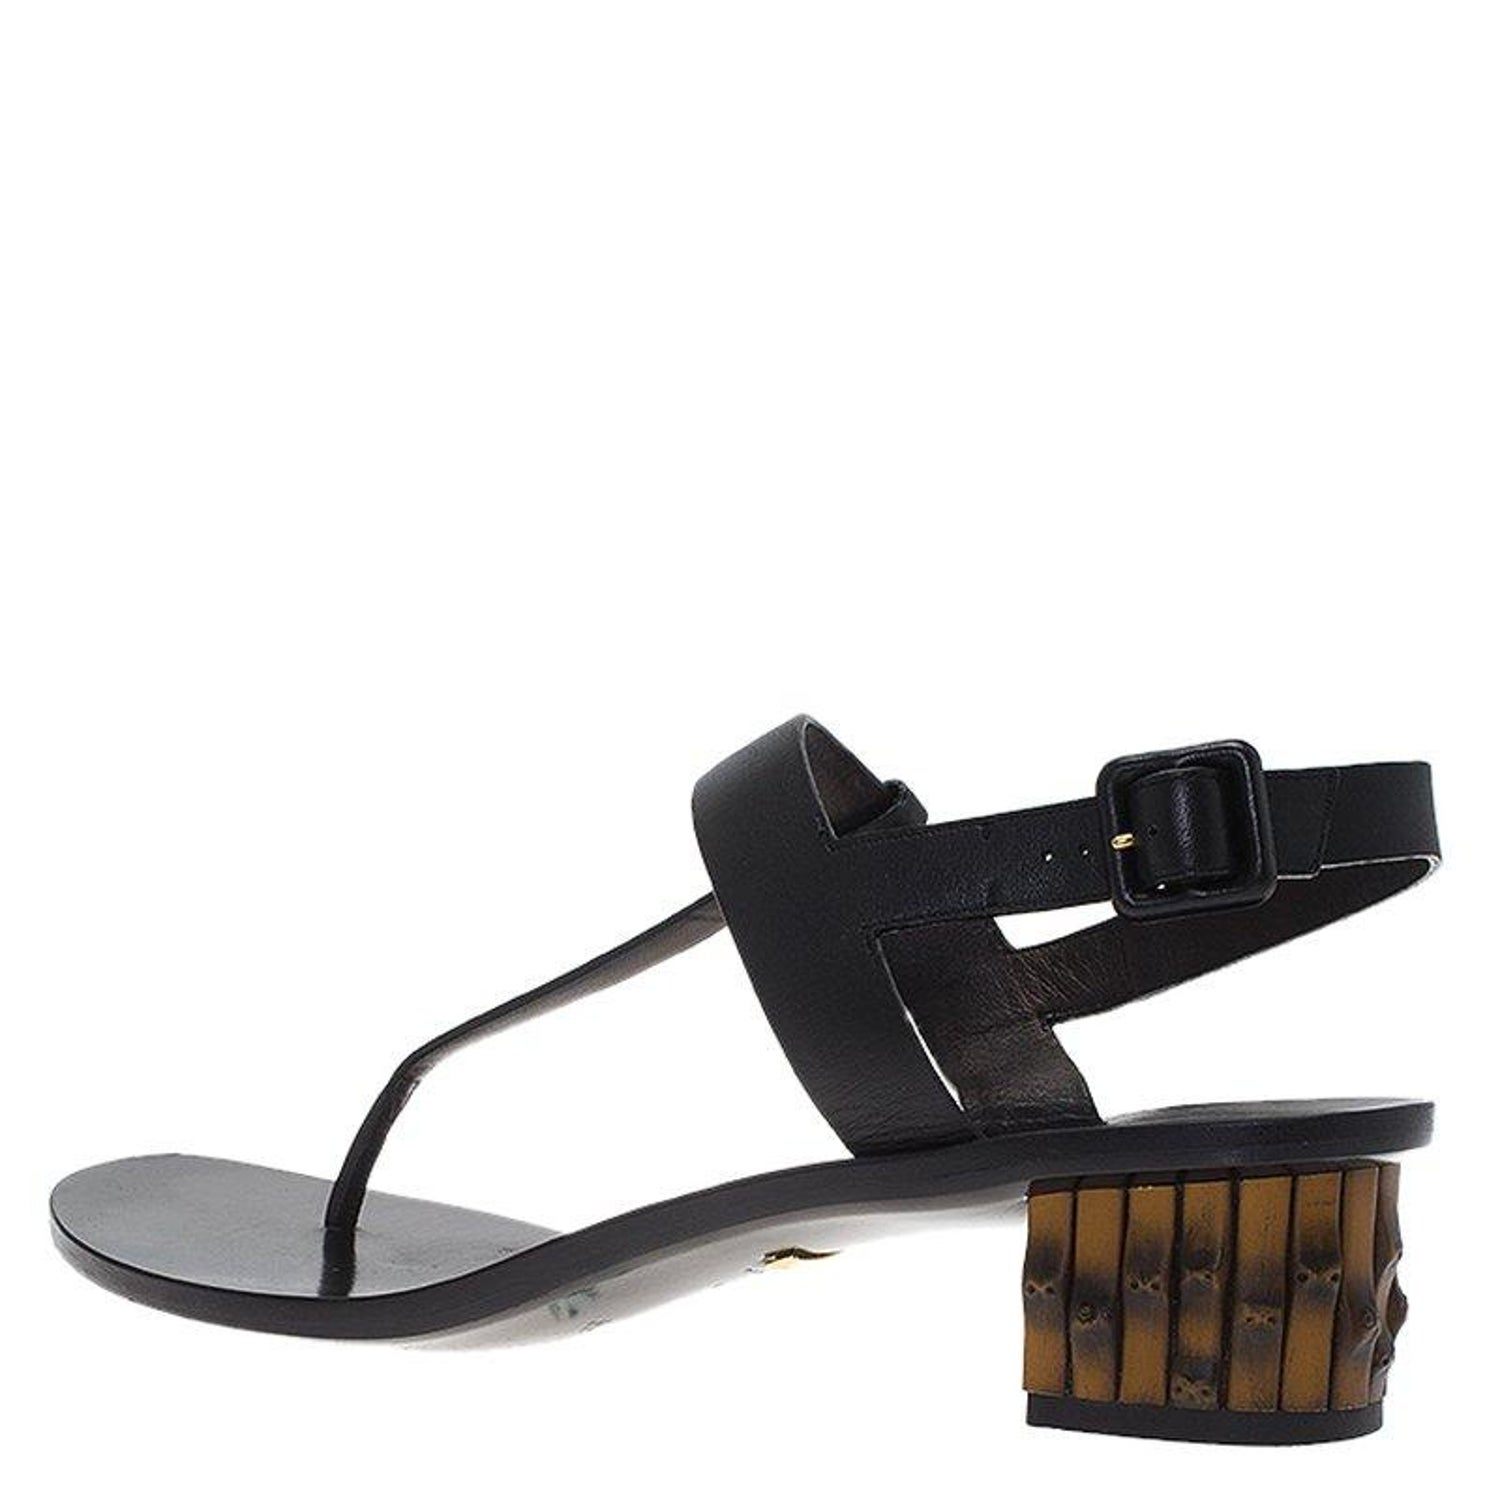 25bc5aec62344 Gucci Black Leather Dahlia Bamboo Heel Thong Sandals Size 40 For Sale at  1stdibs